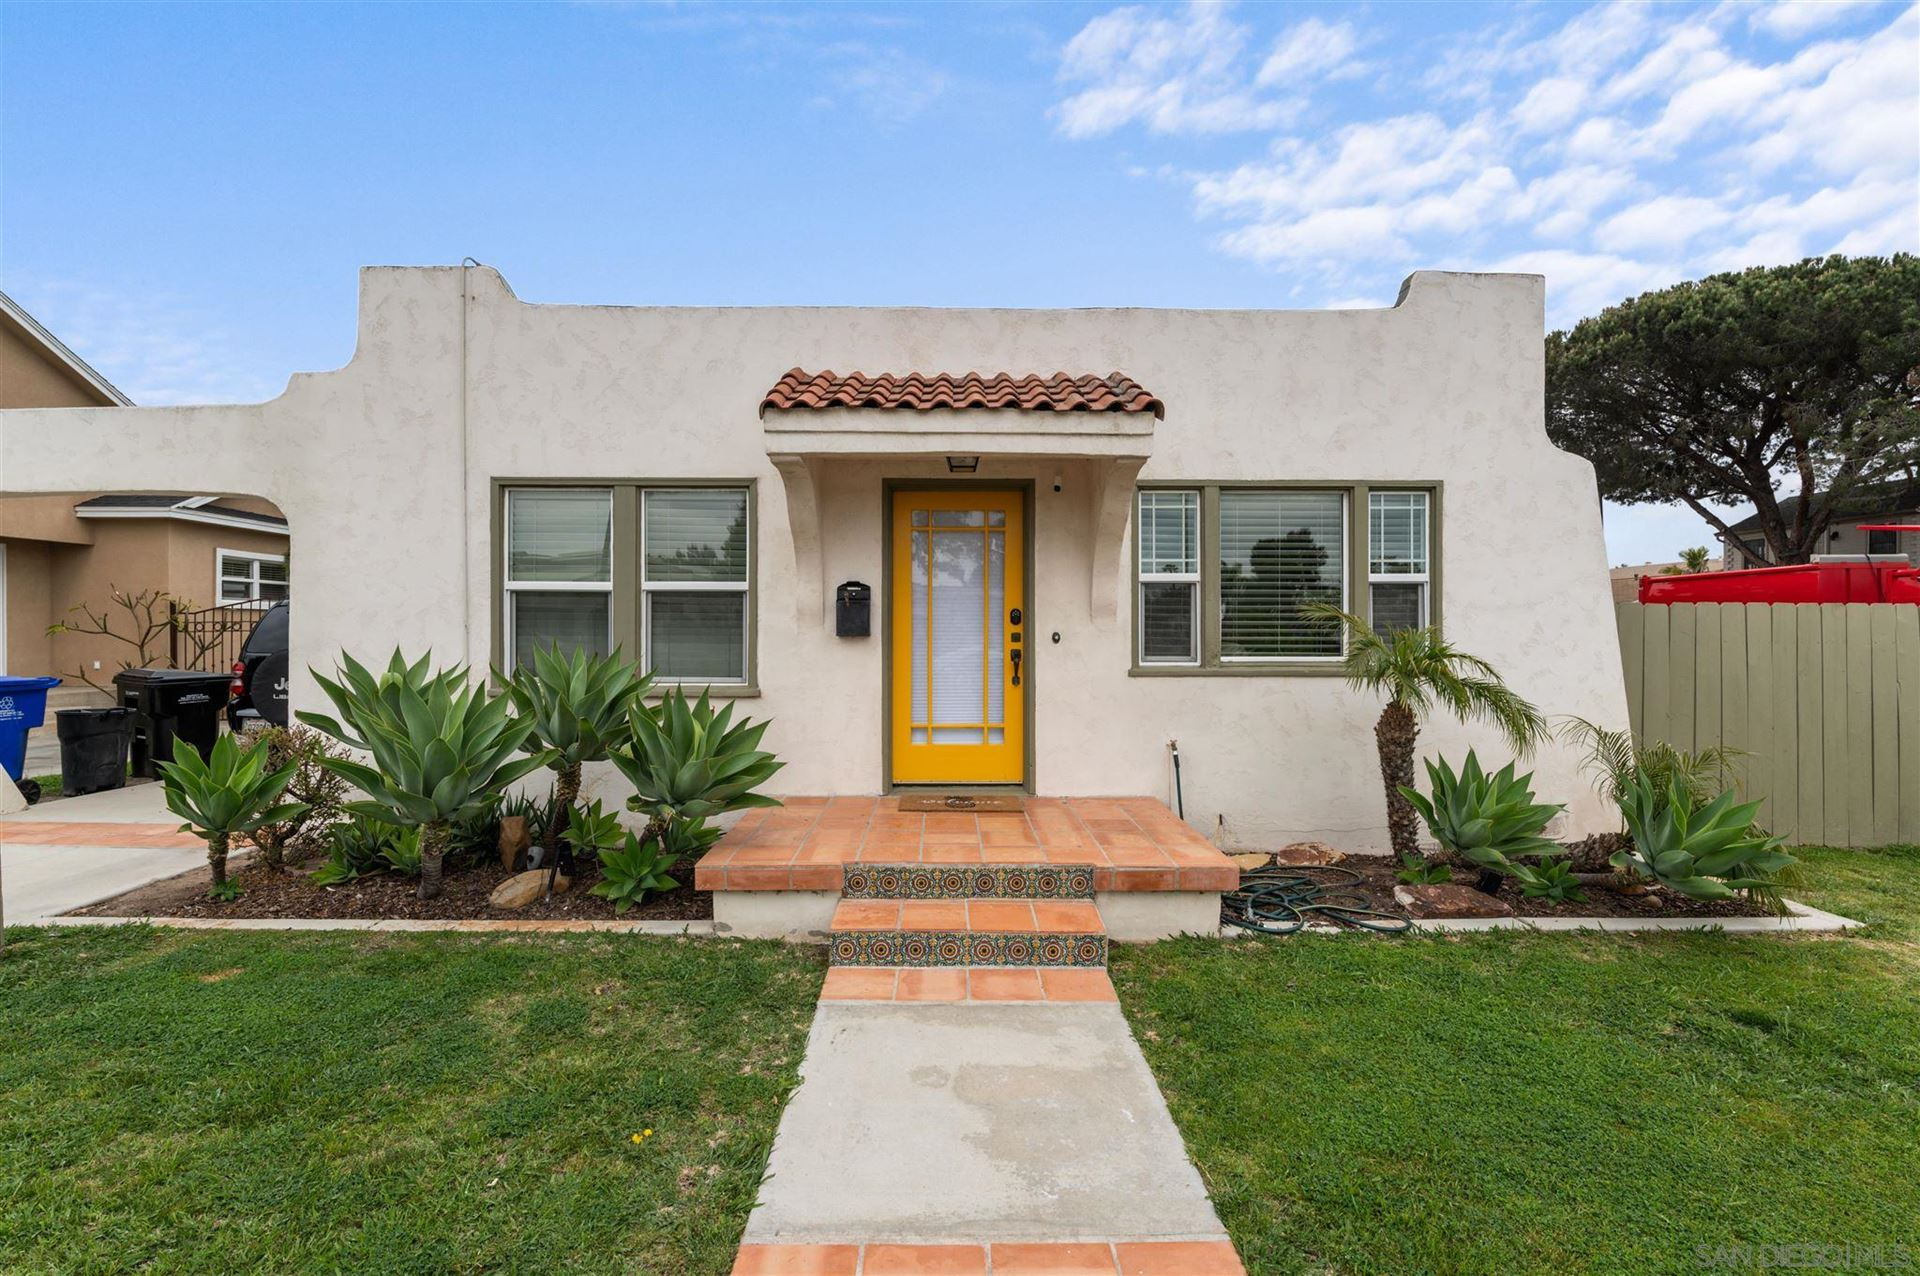 Photo for 4403 42Nd St, San Diego, CA 92116 (MLS # 210011514)